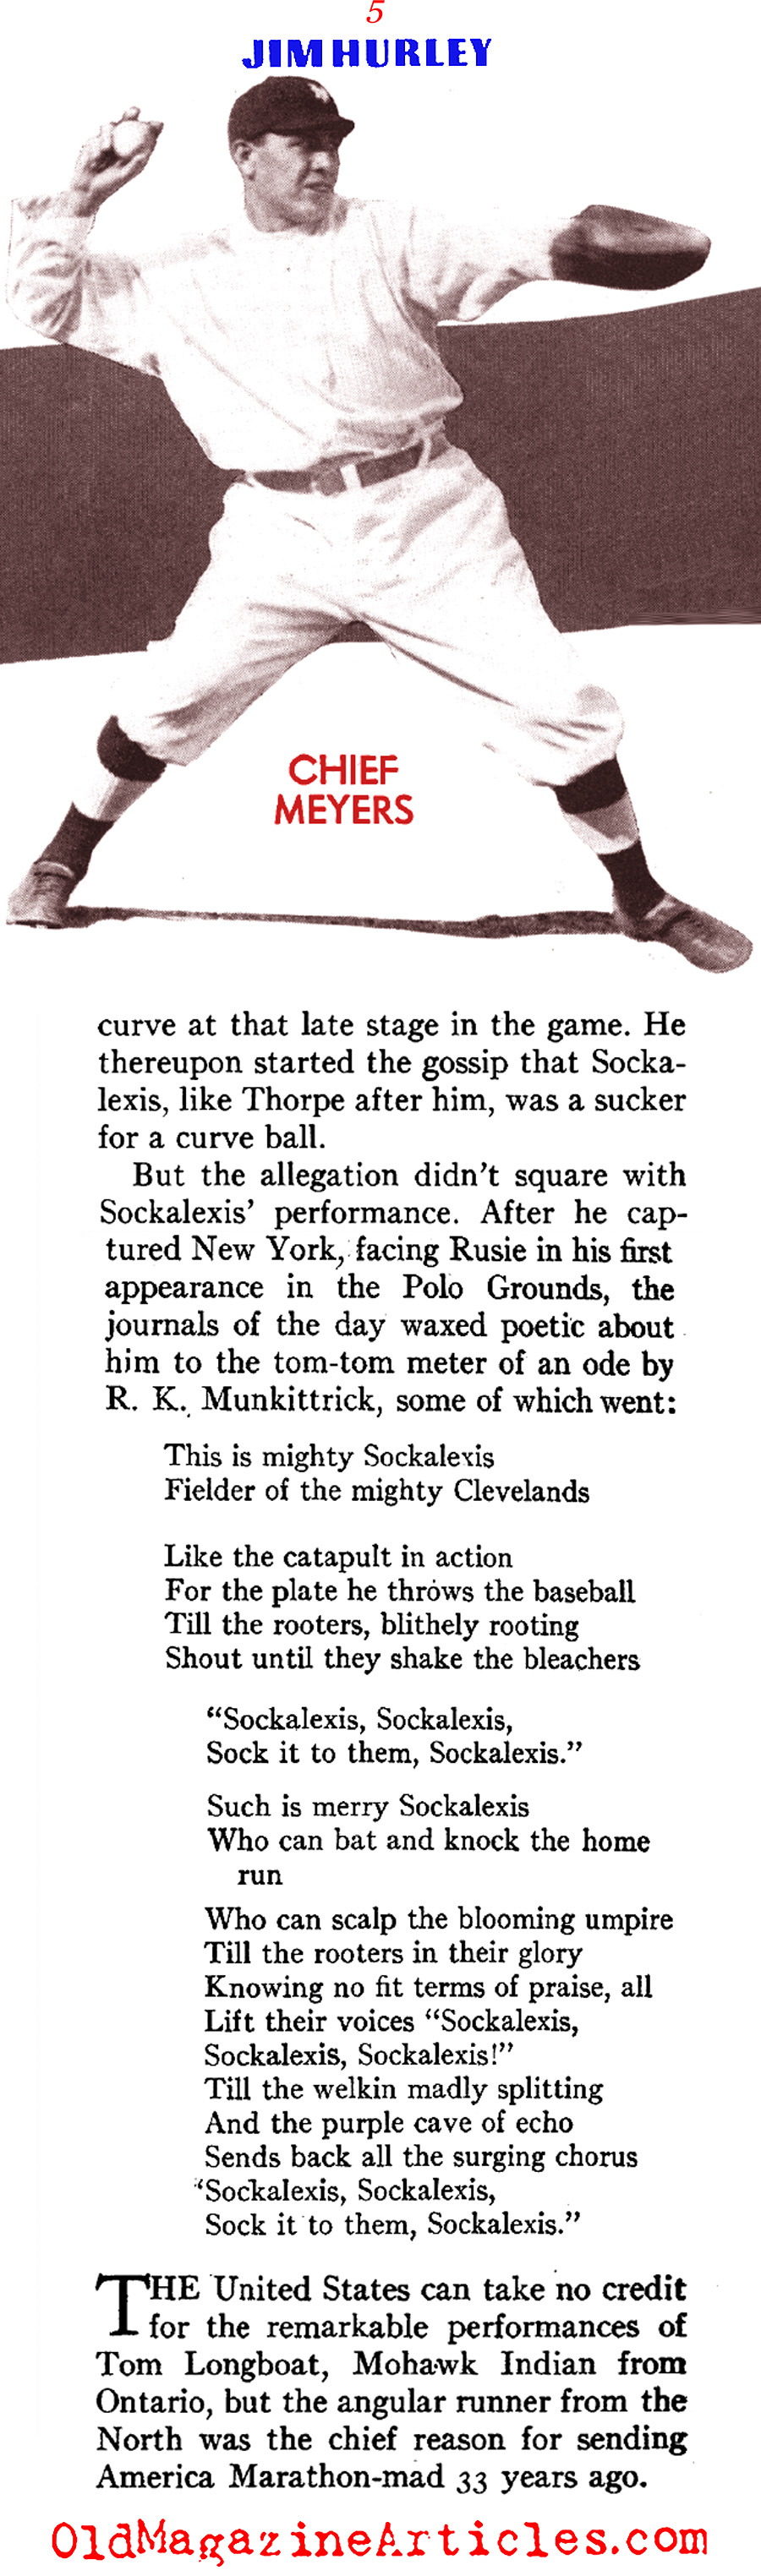 Jim Thorpe and the Carlisle Indians (American Legion Magazine, 1940)